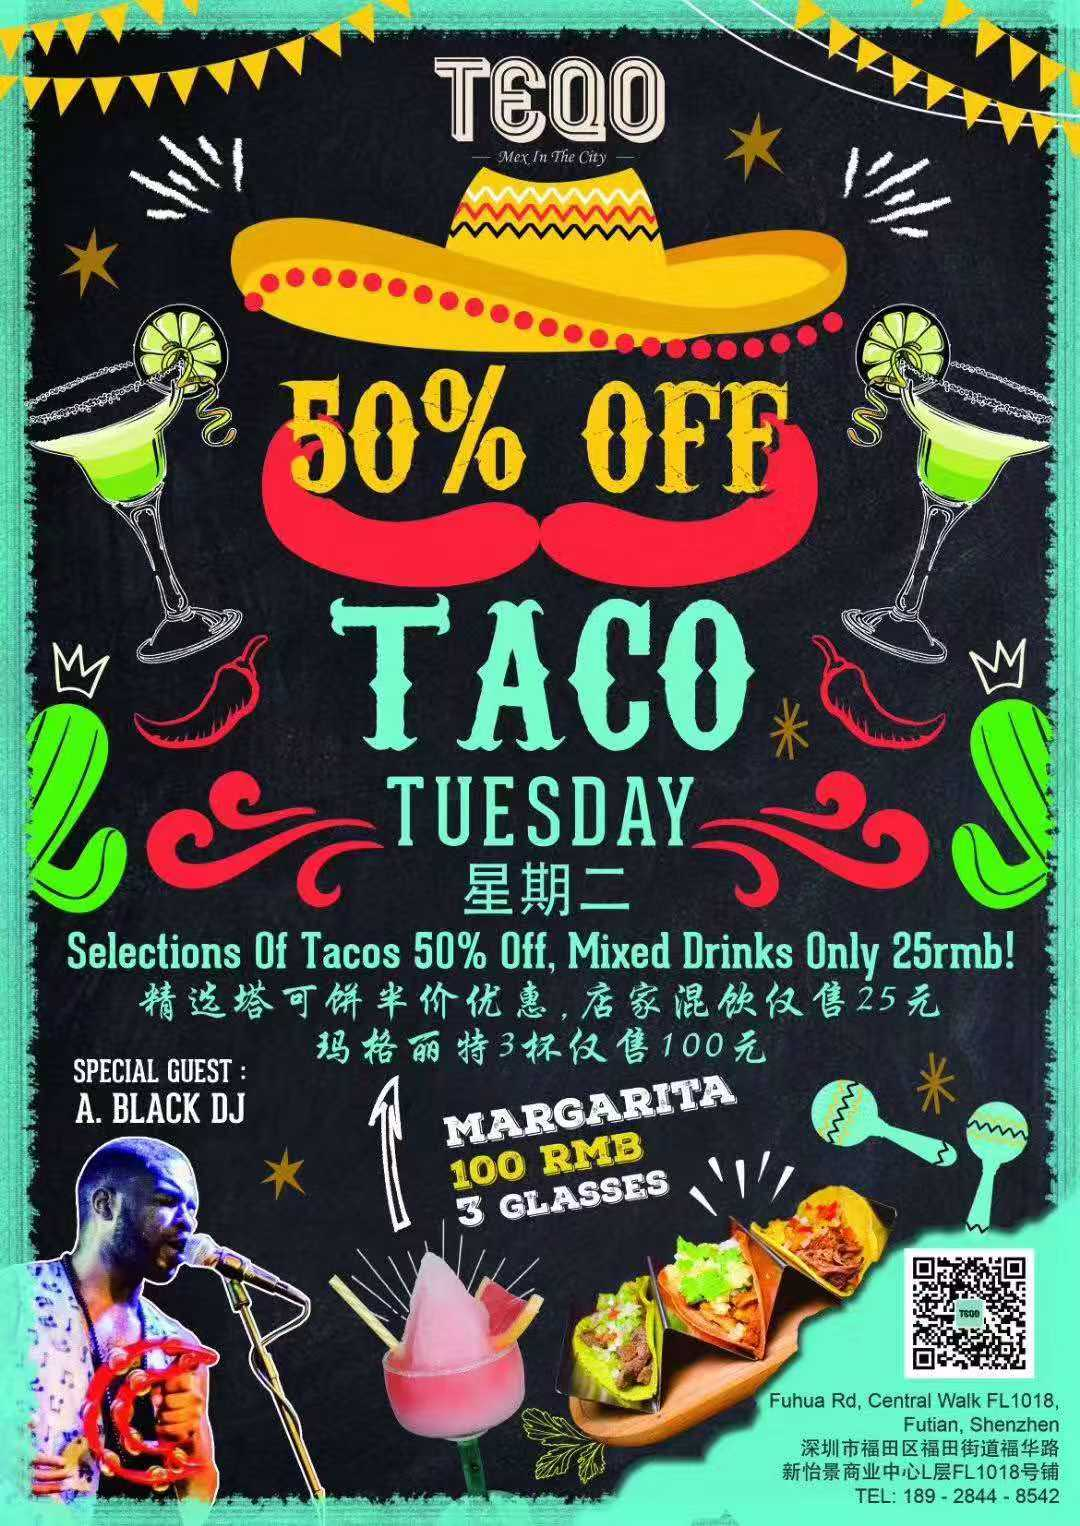 【TEQO】50% OFF TACO TUESDAY